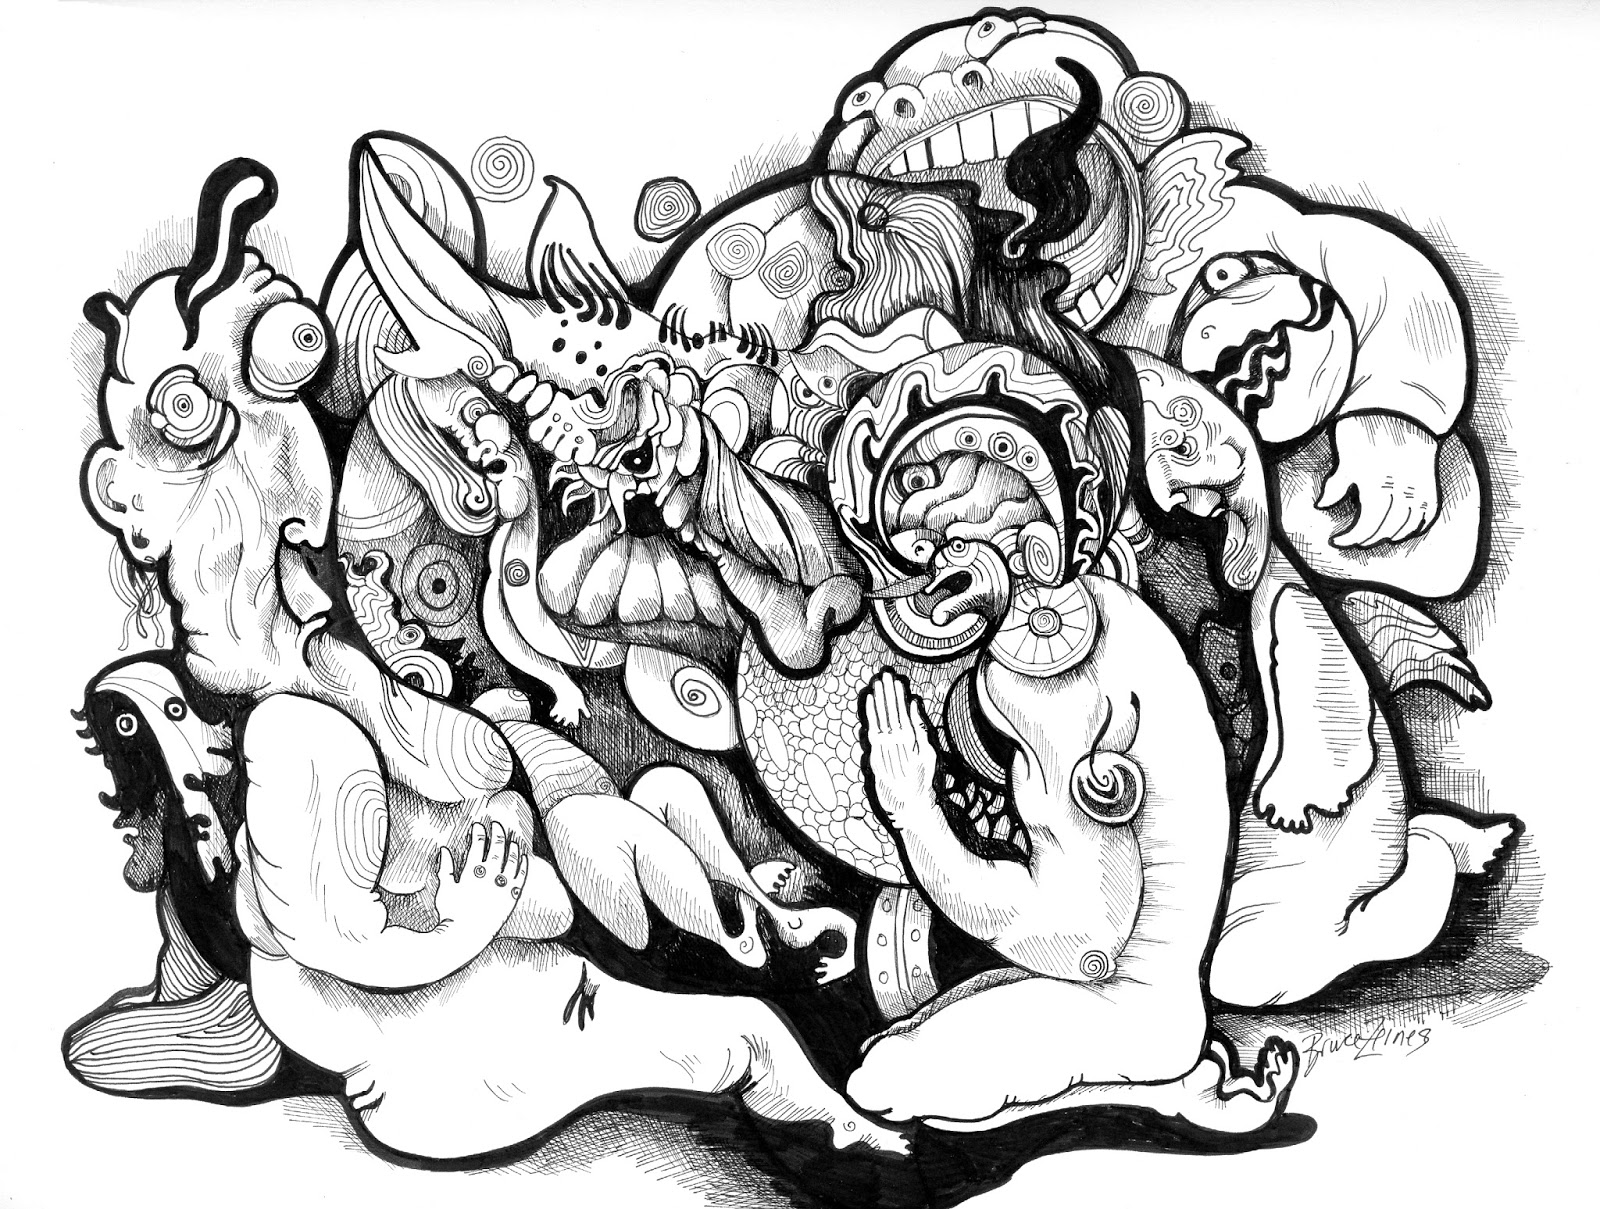 coloring pages for adults trippy trippy coloring pages free image trippy coloring pages for adults trippy pages coloring